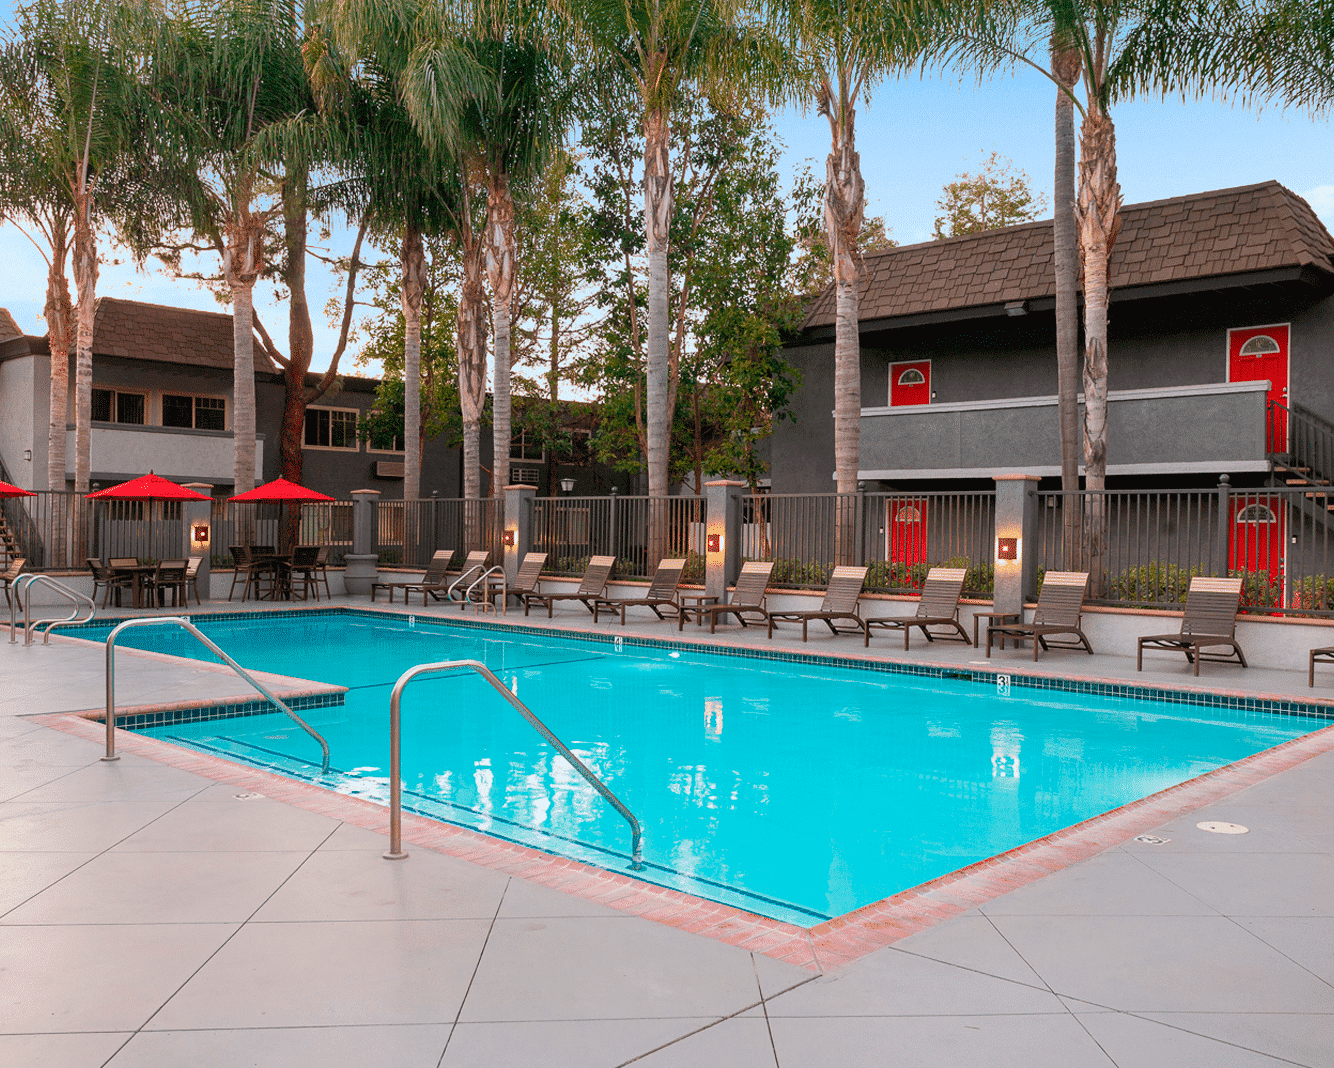 Relaxing Pool at Park Plaza Apartments